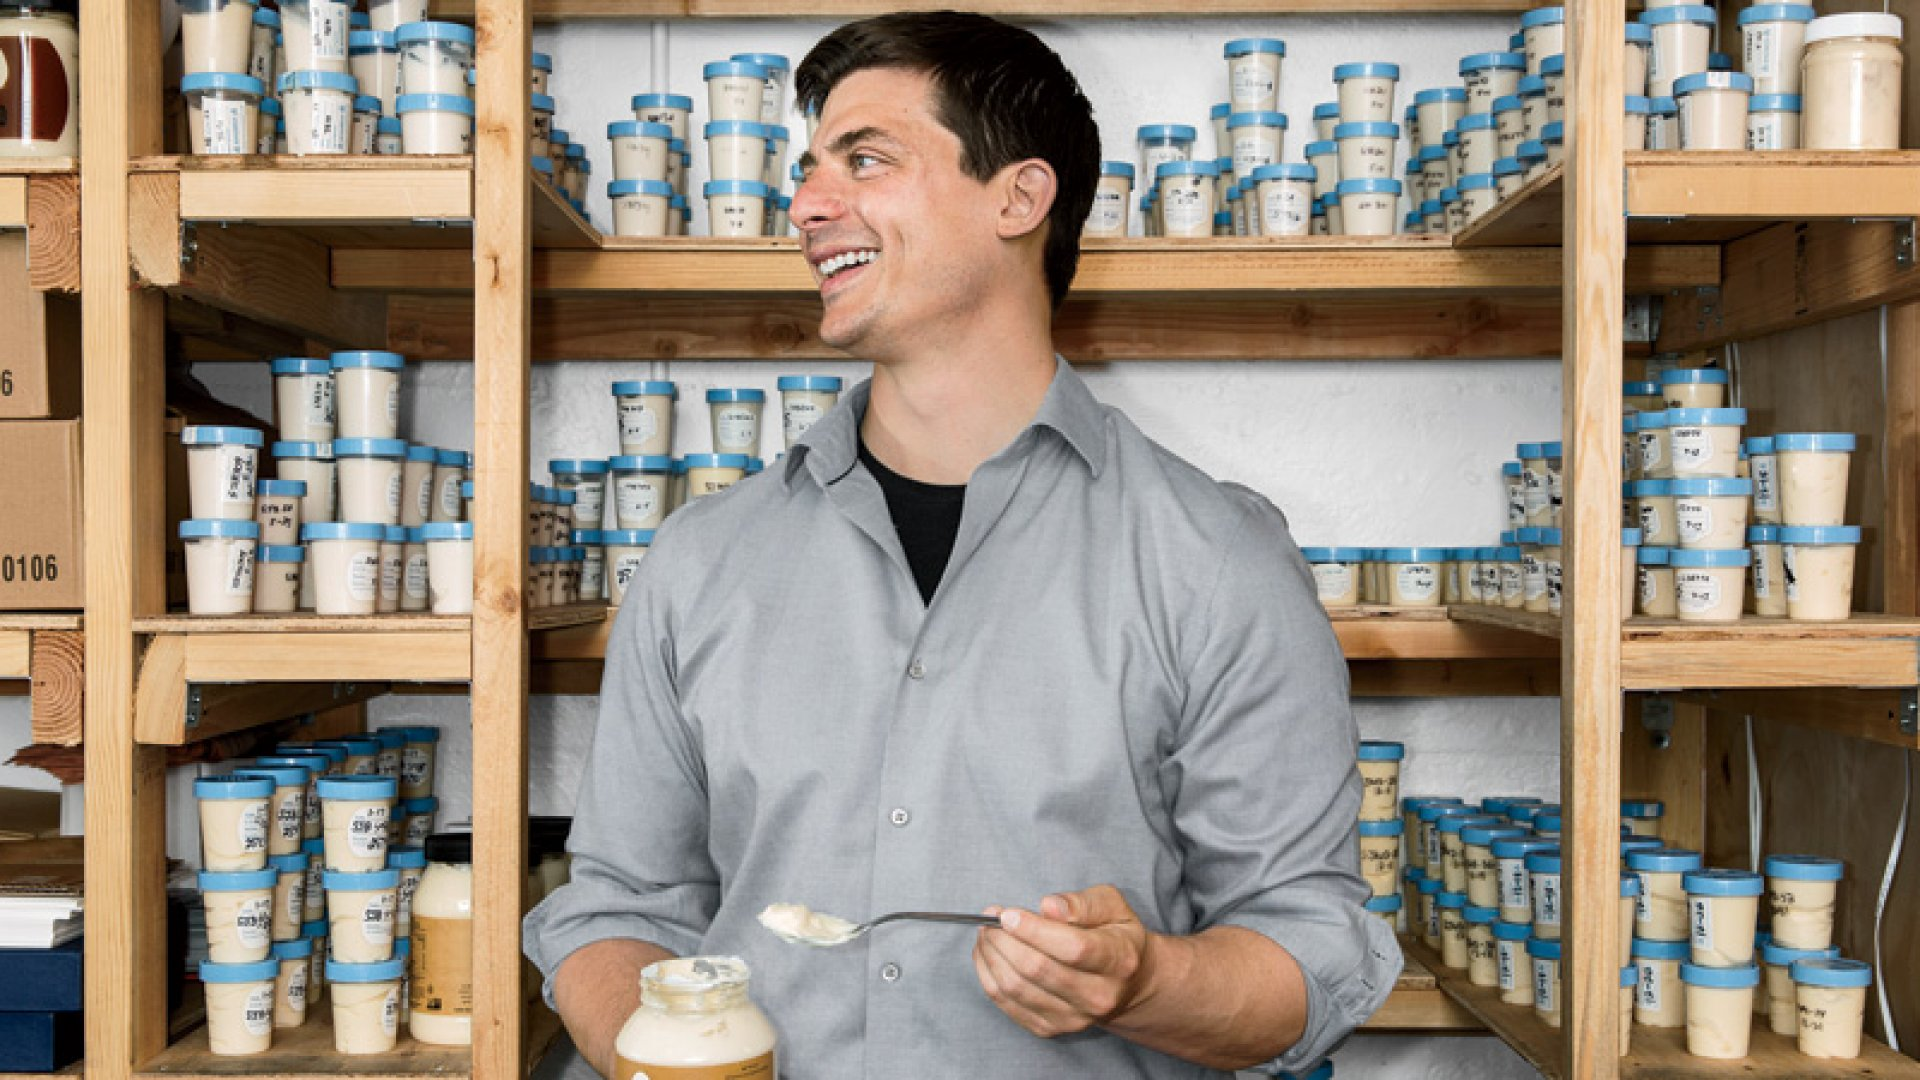 Josh Tetrick founded Hampton Creek Foods with his childhood buddy Josh Balk in 2011, with the goal of creating a cheaper, healthier, more earth-friendly egg alternative that could help cut down on factory farming.